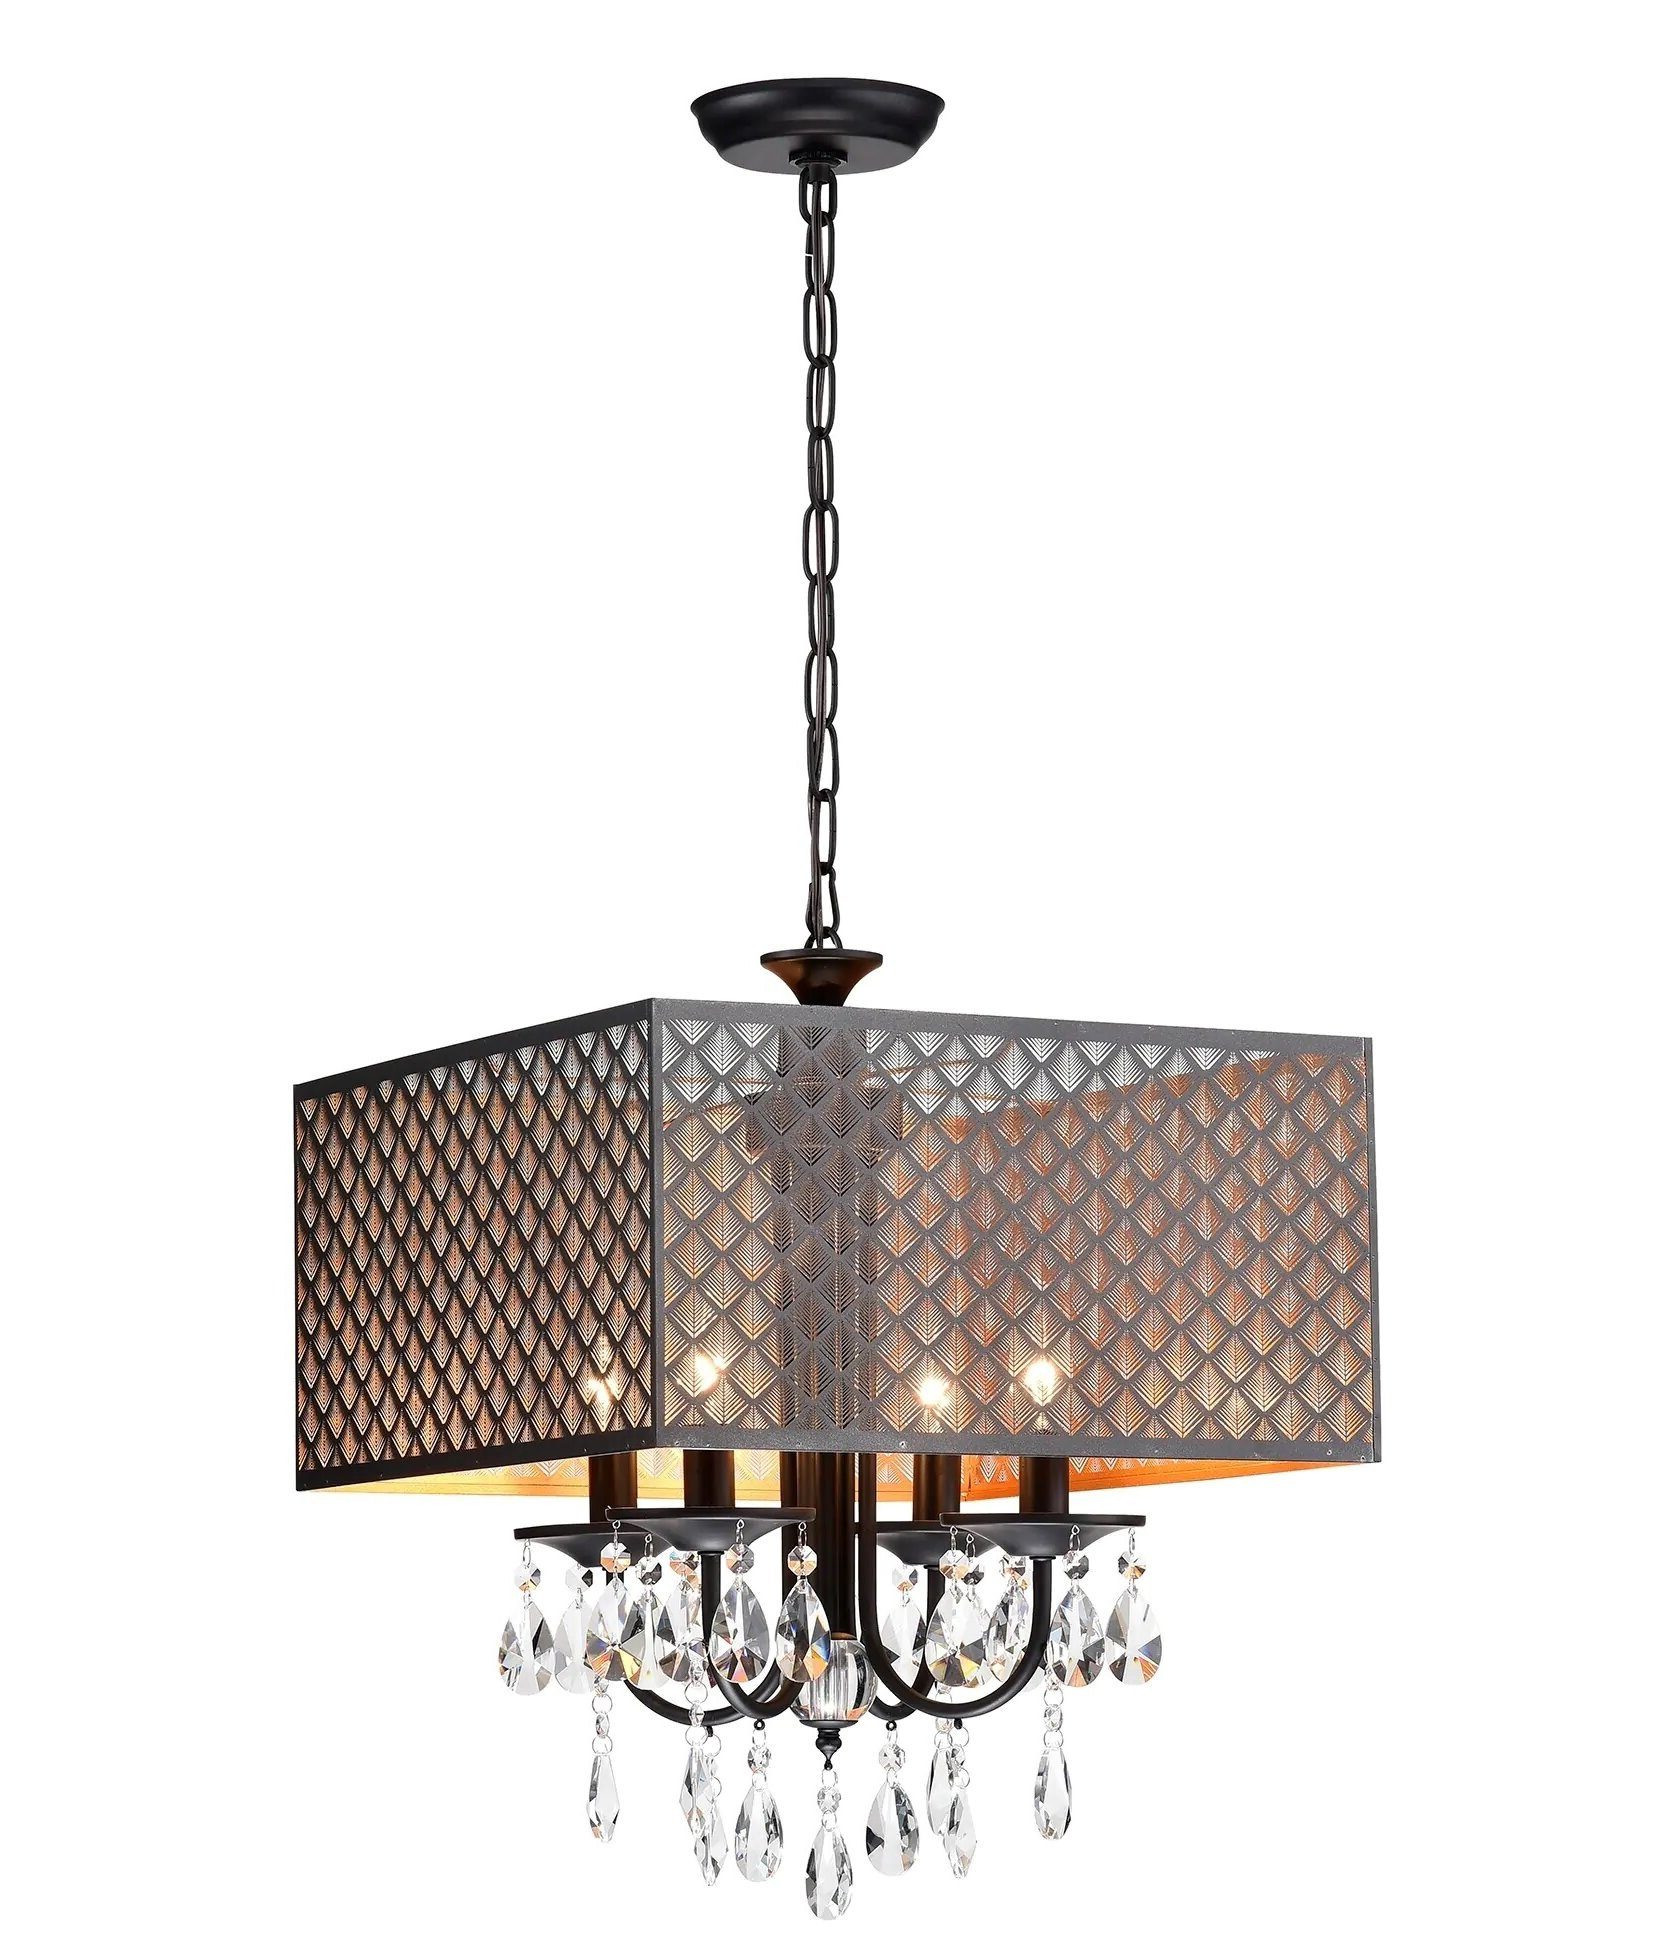 2020 Mathers 4 Light Rectangle Chandelier Within Jill 4 Light Drum Chandeliers (View 1 of 20)